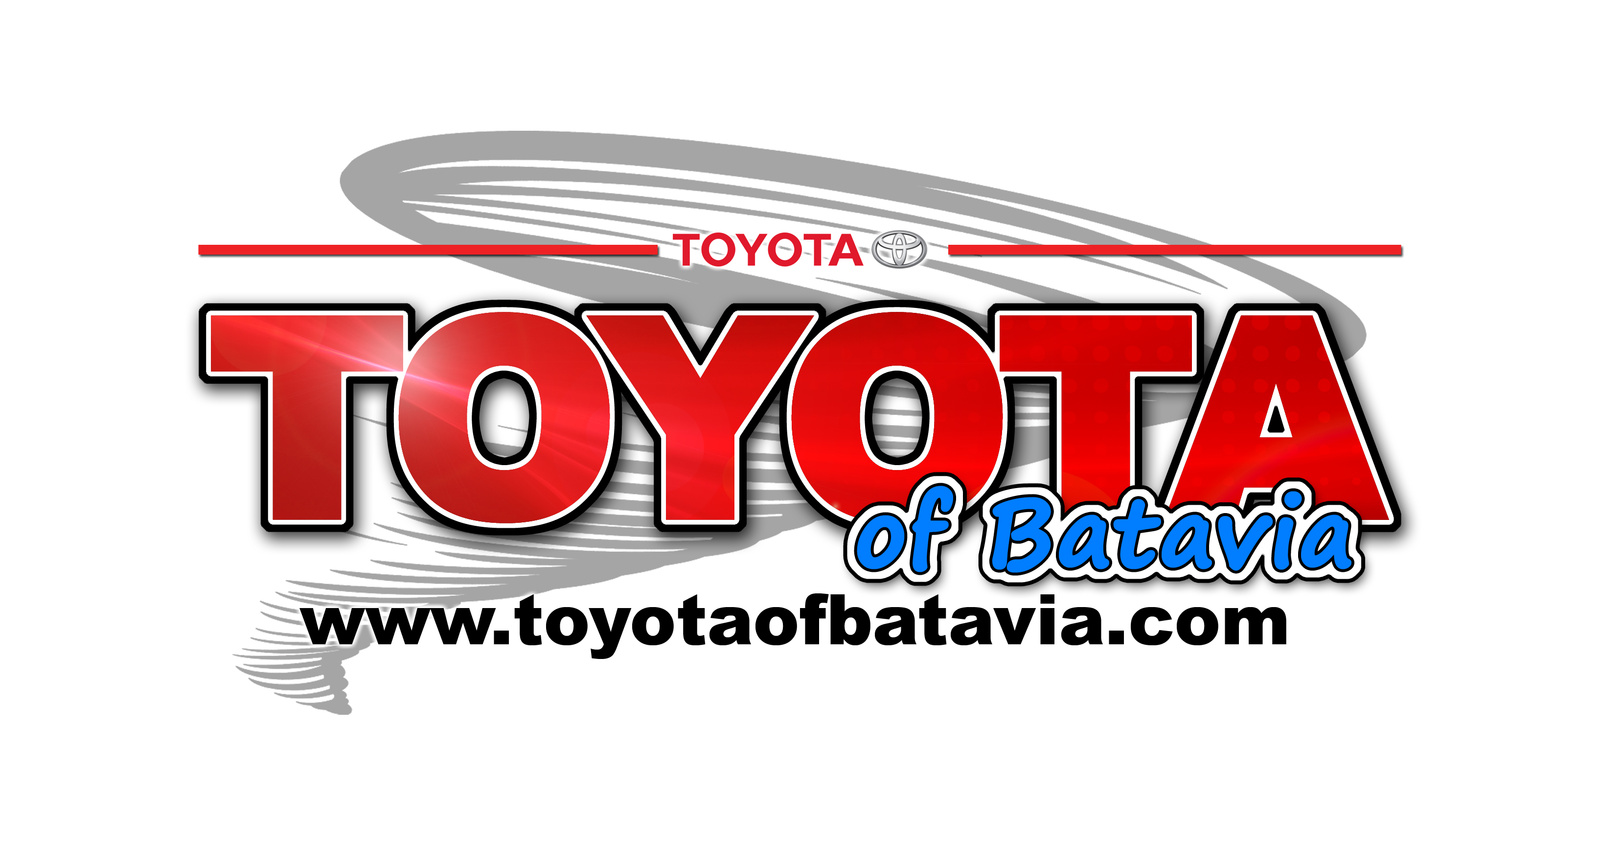 Jeep Dealers Rochester Ny >> Toyota of Batavia - Batavia, NY: Read Consumer reviews, Browse Used and New Cars for Sale